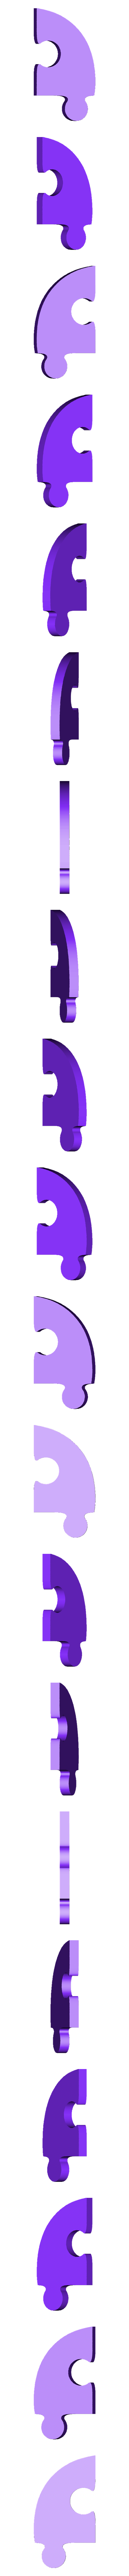 4.stl Download free STL file Autism Awareness Month Puzzle 2019 • Model to 3D print, Dsk